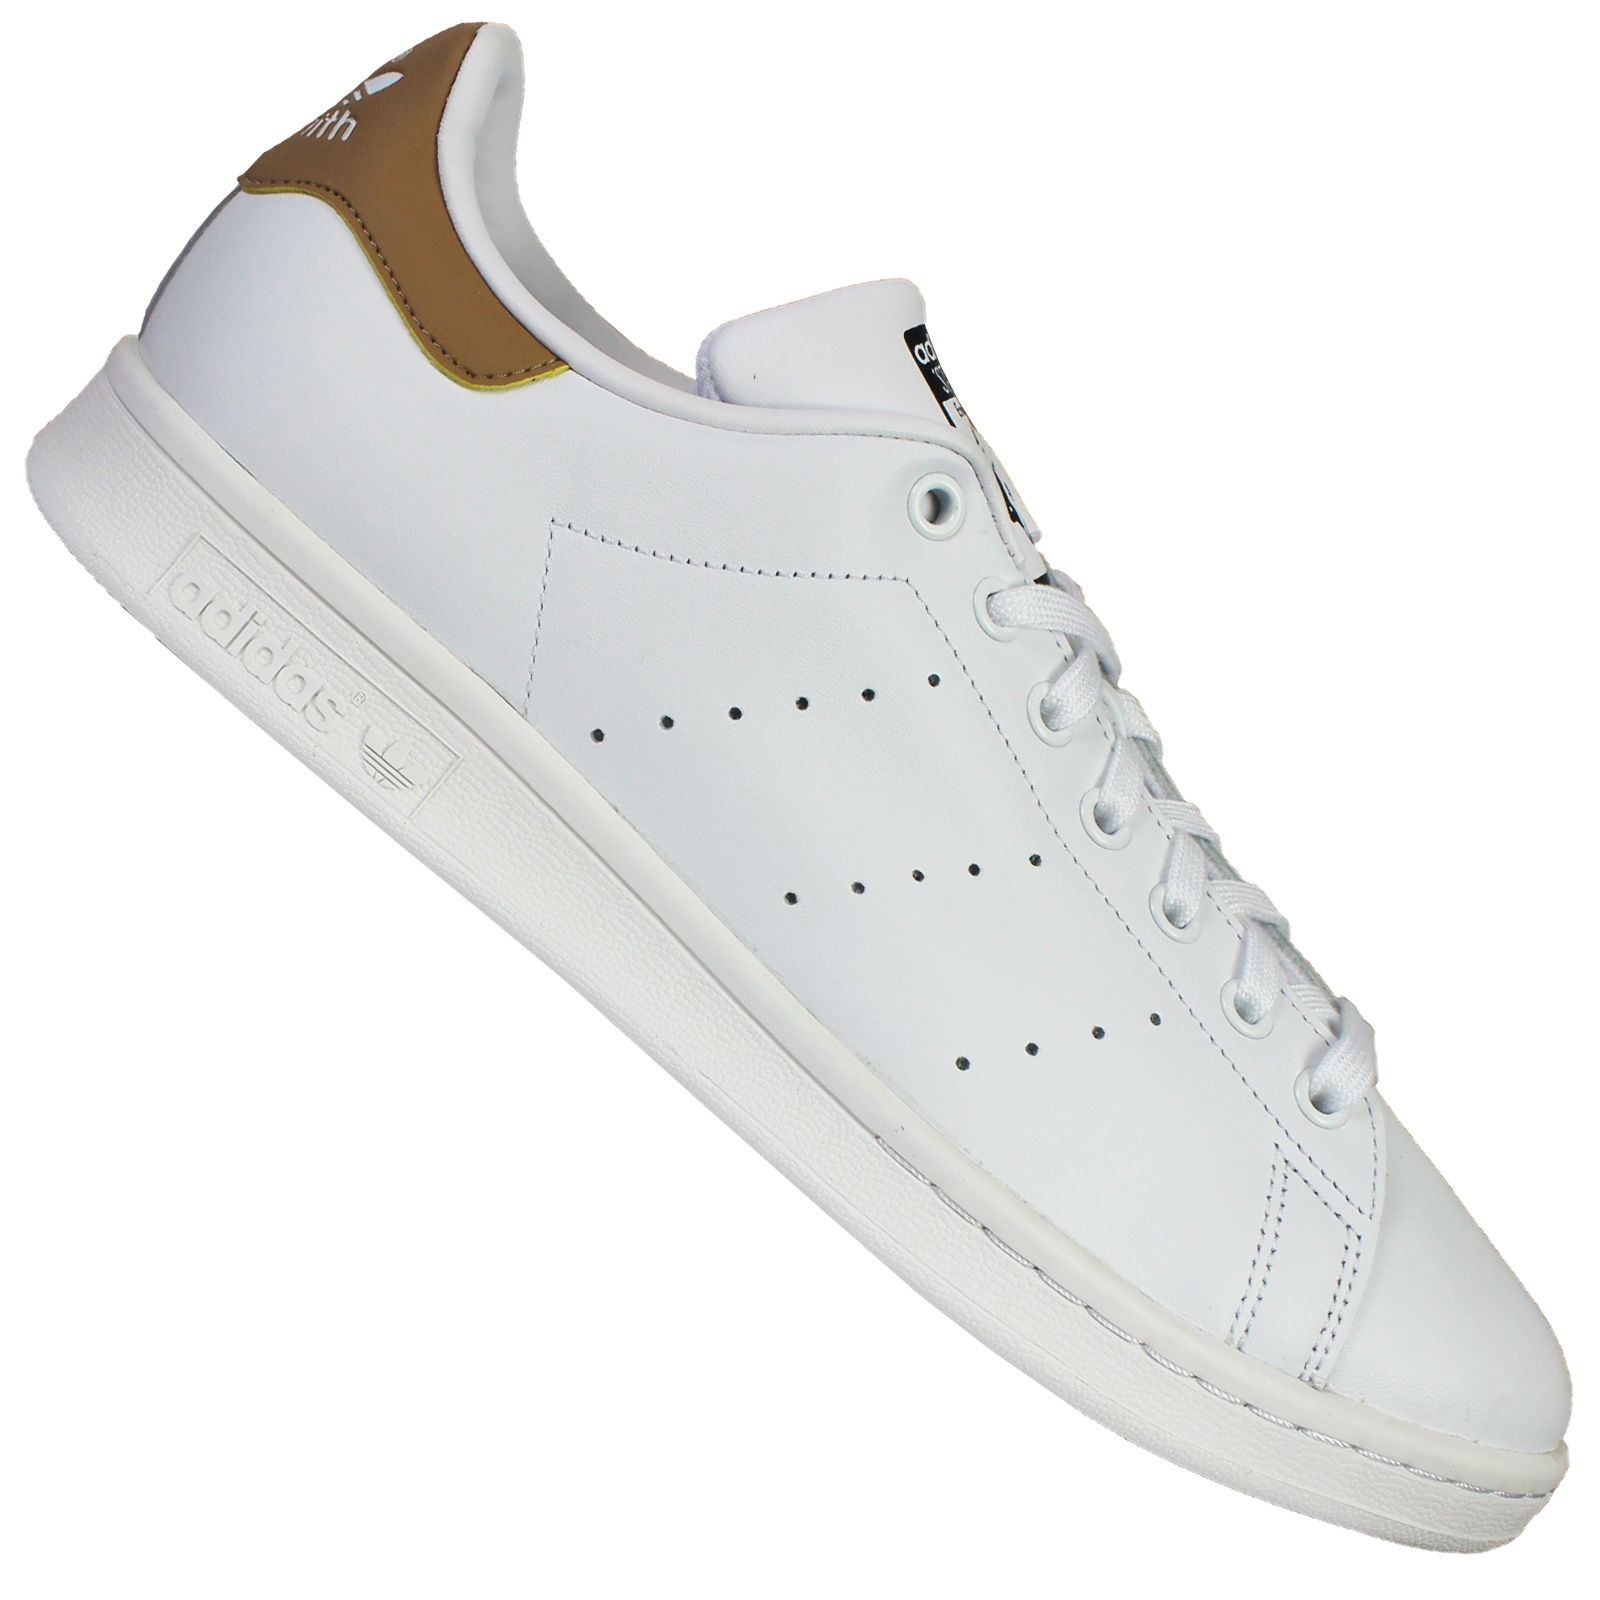 adidas Originals Stan Smith Herren Sneaker Turnschuhe Weiß Beige 45 13 UK 10,5